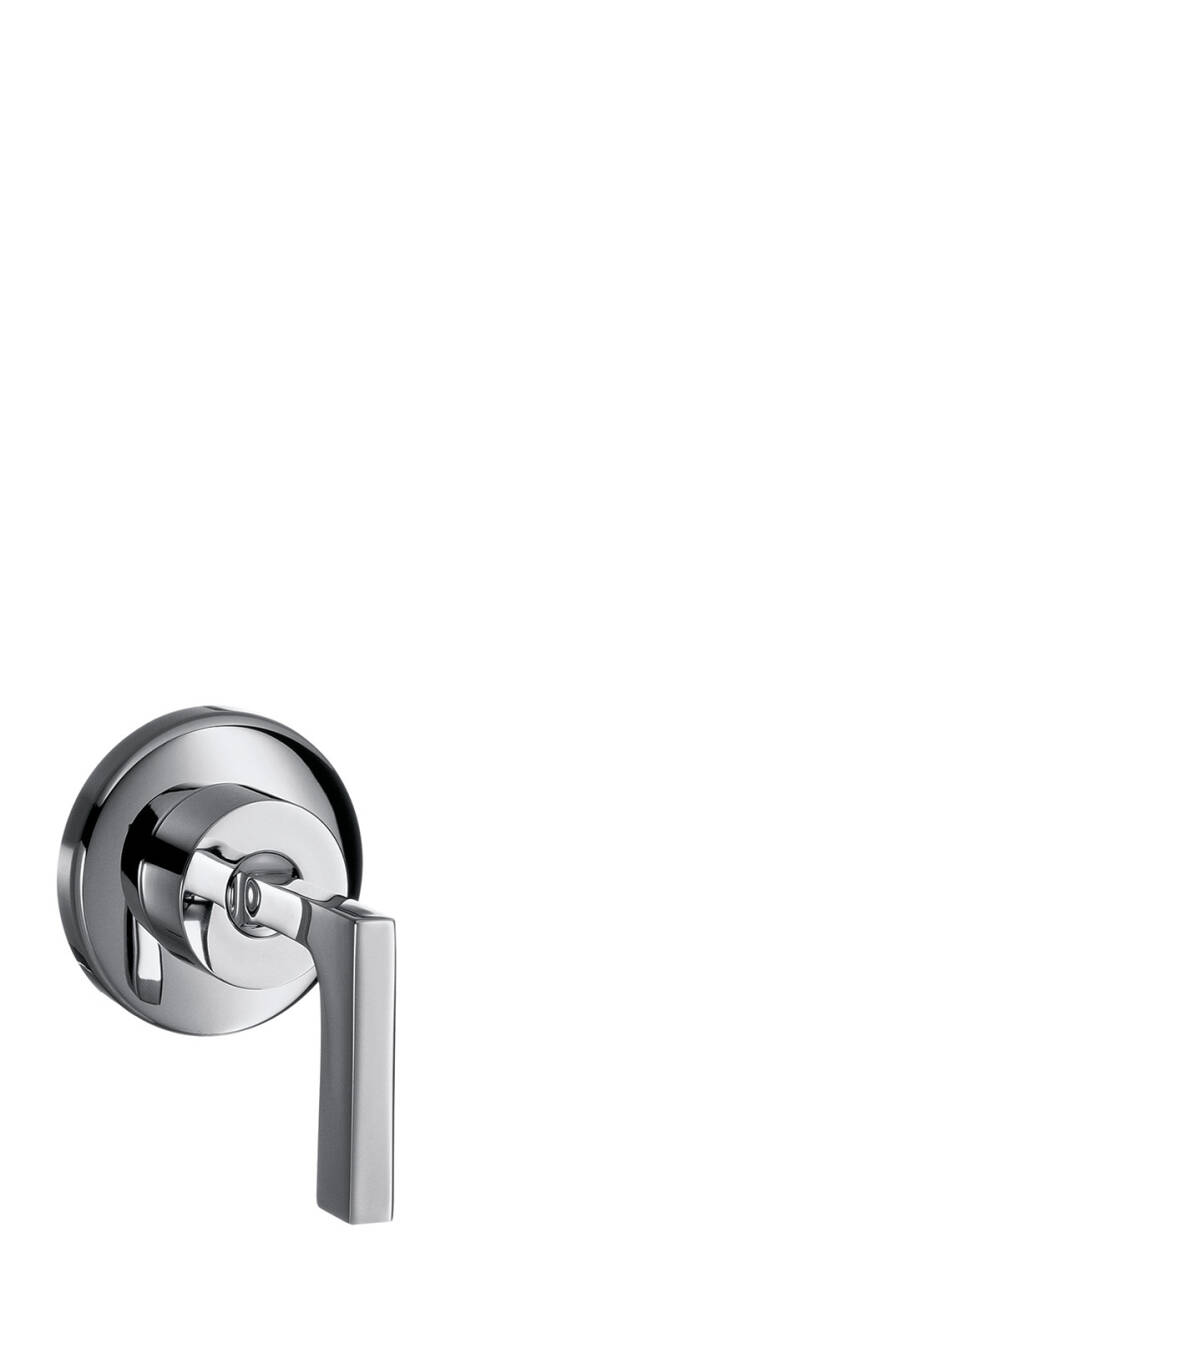 Shut-off valve for concealed installation with lever handle, Chrome, 39960000